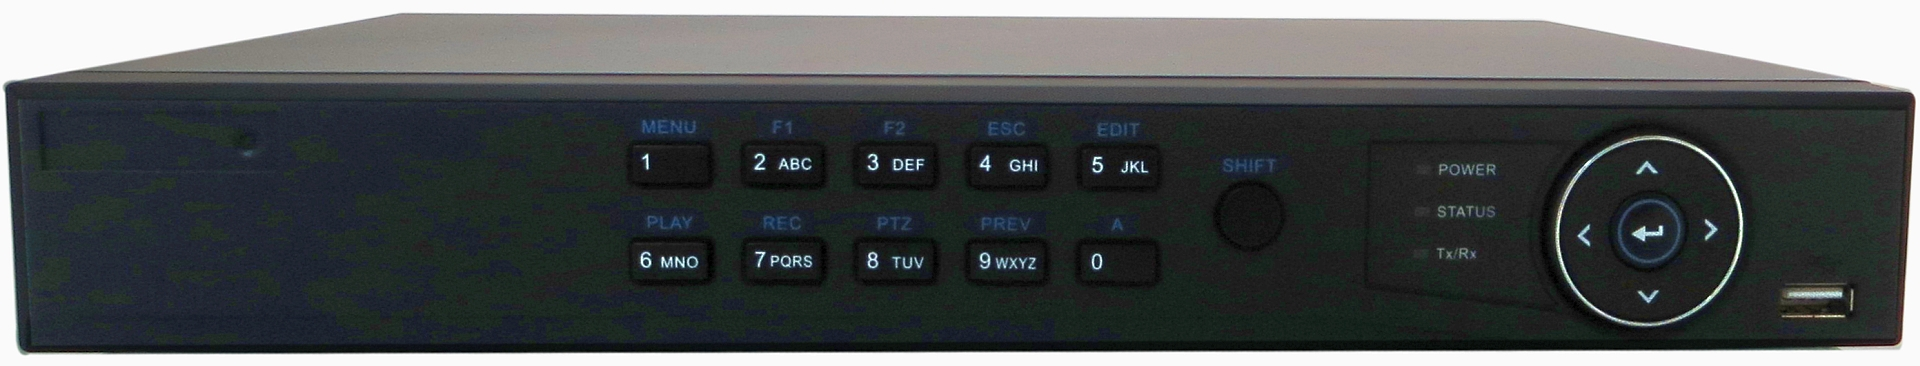 eSecure 4 Channel Tribrid DVR: HD-TVI / Analog 960H / IP Hybrid